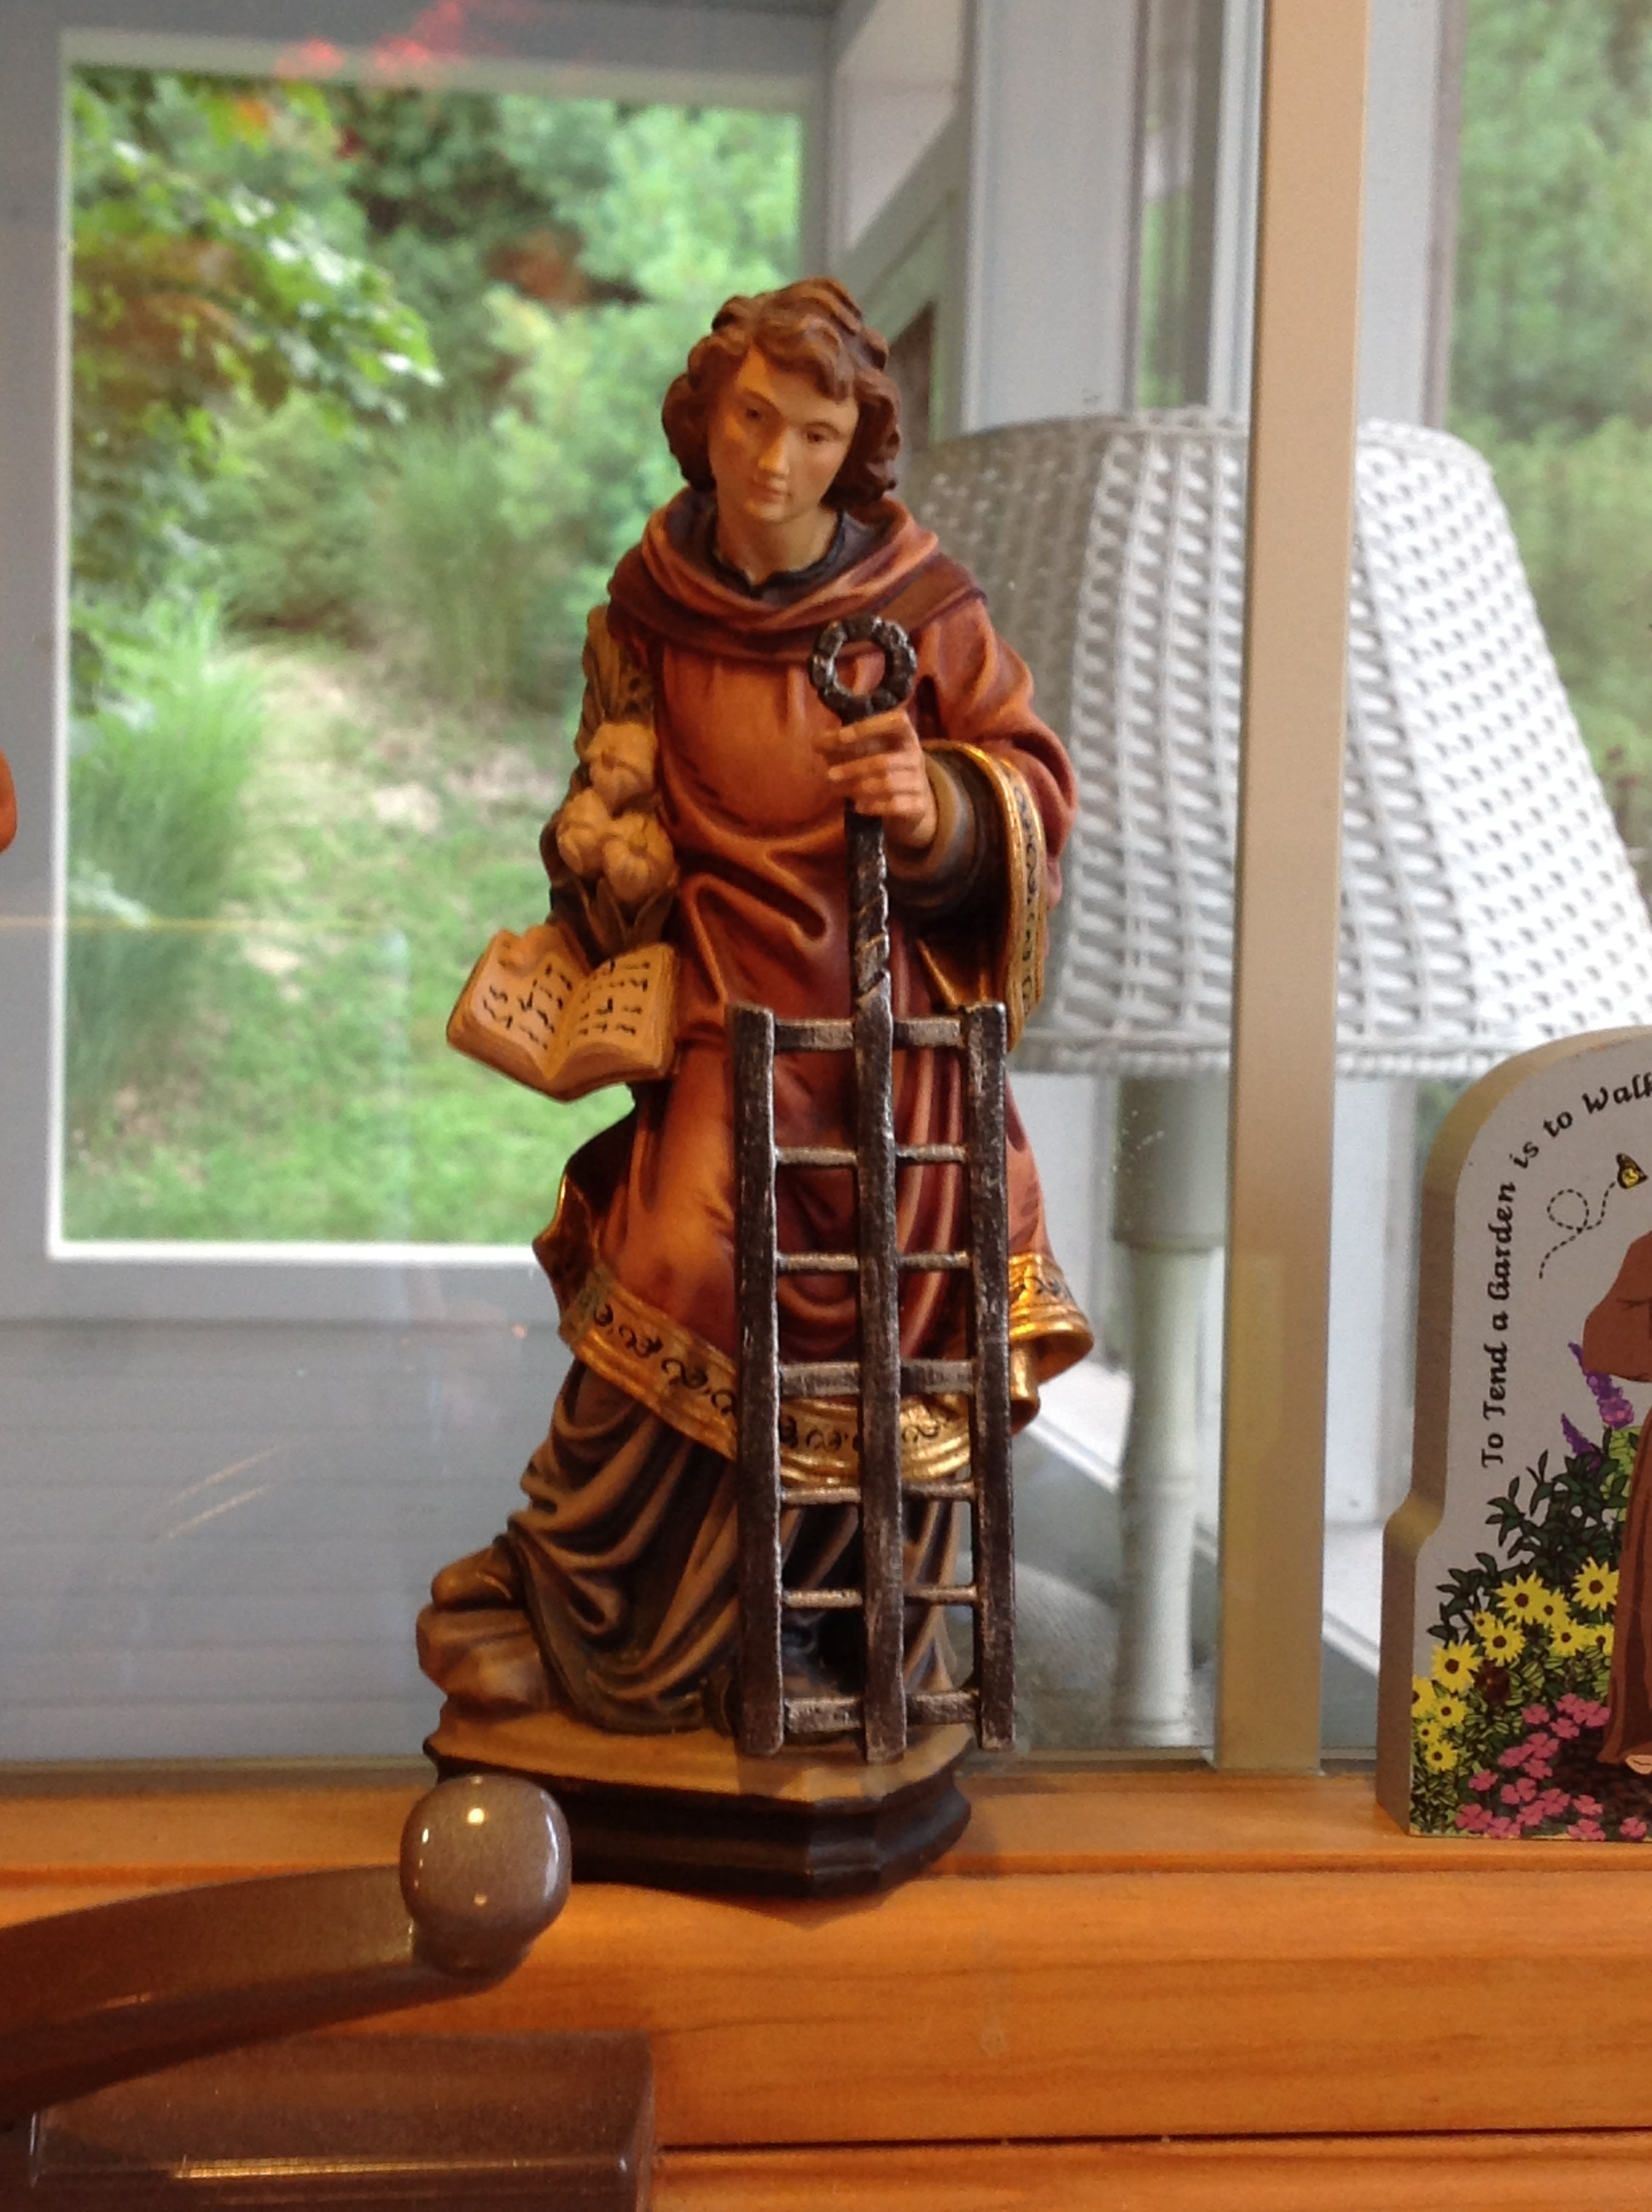 St. Lawrence, the patron saint of cooks